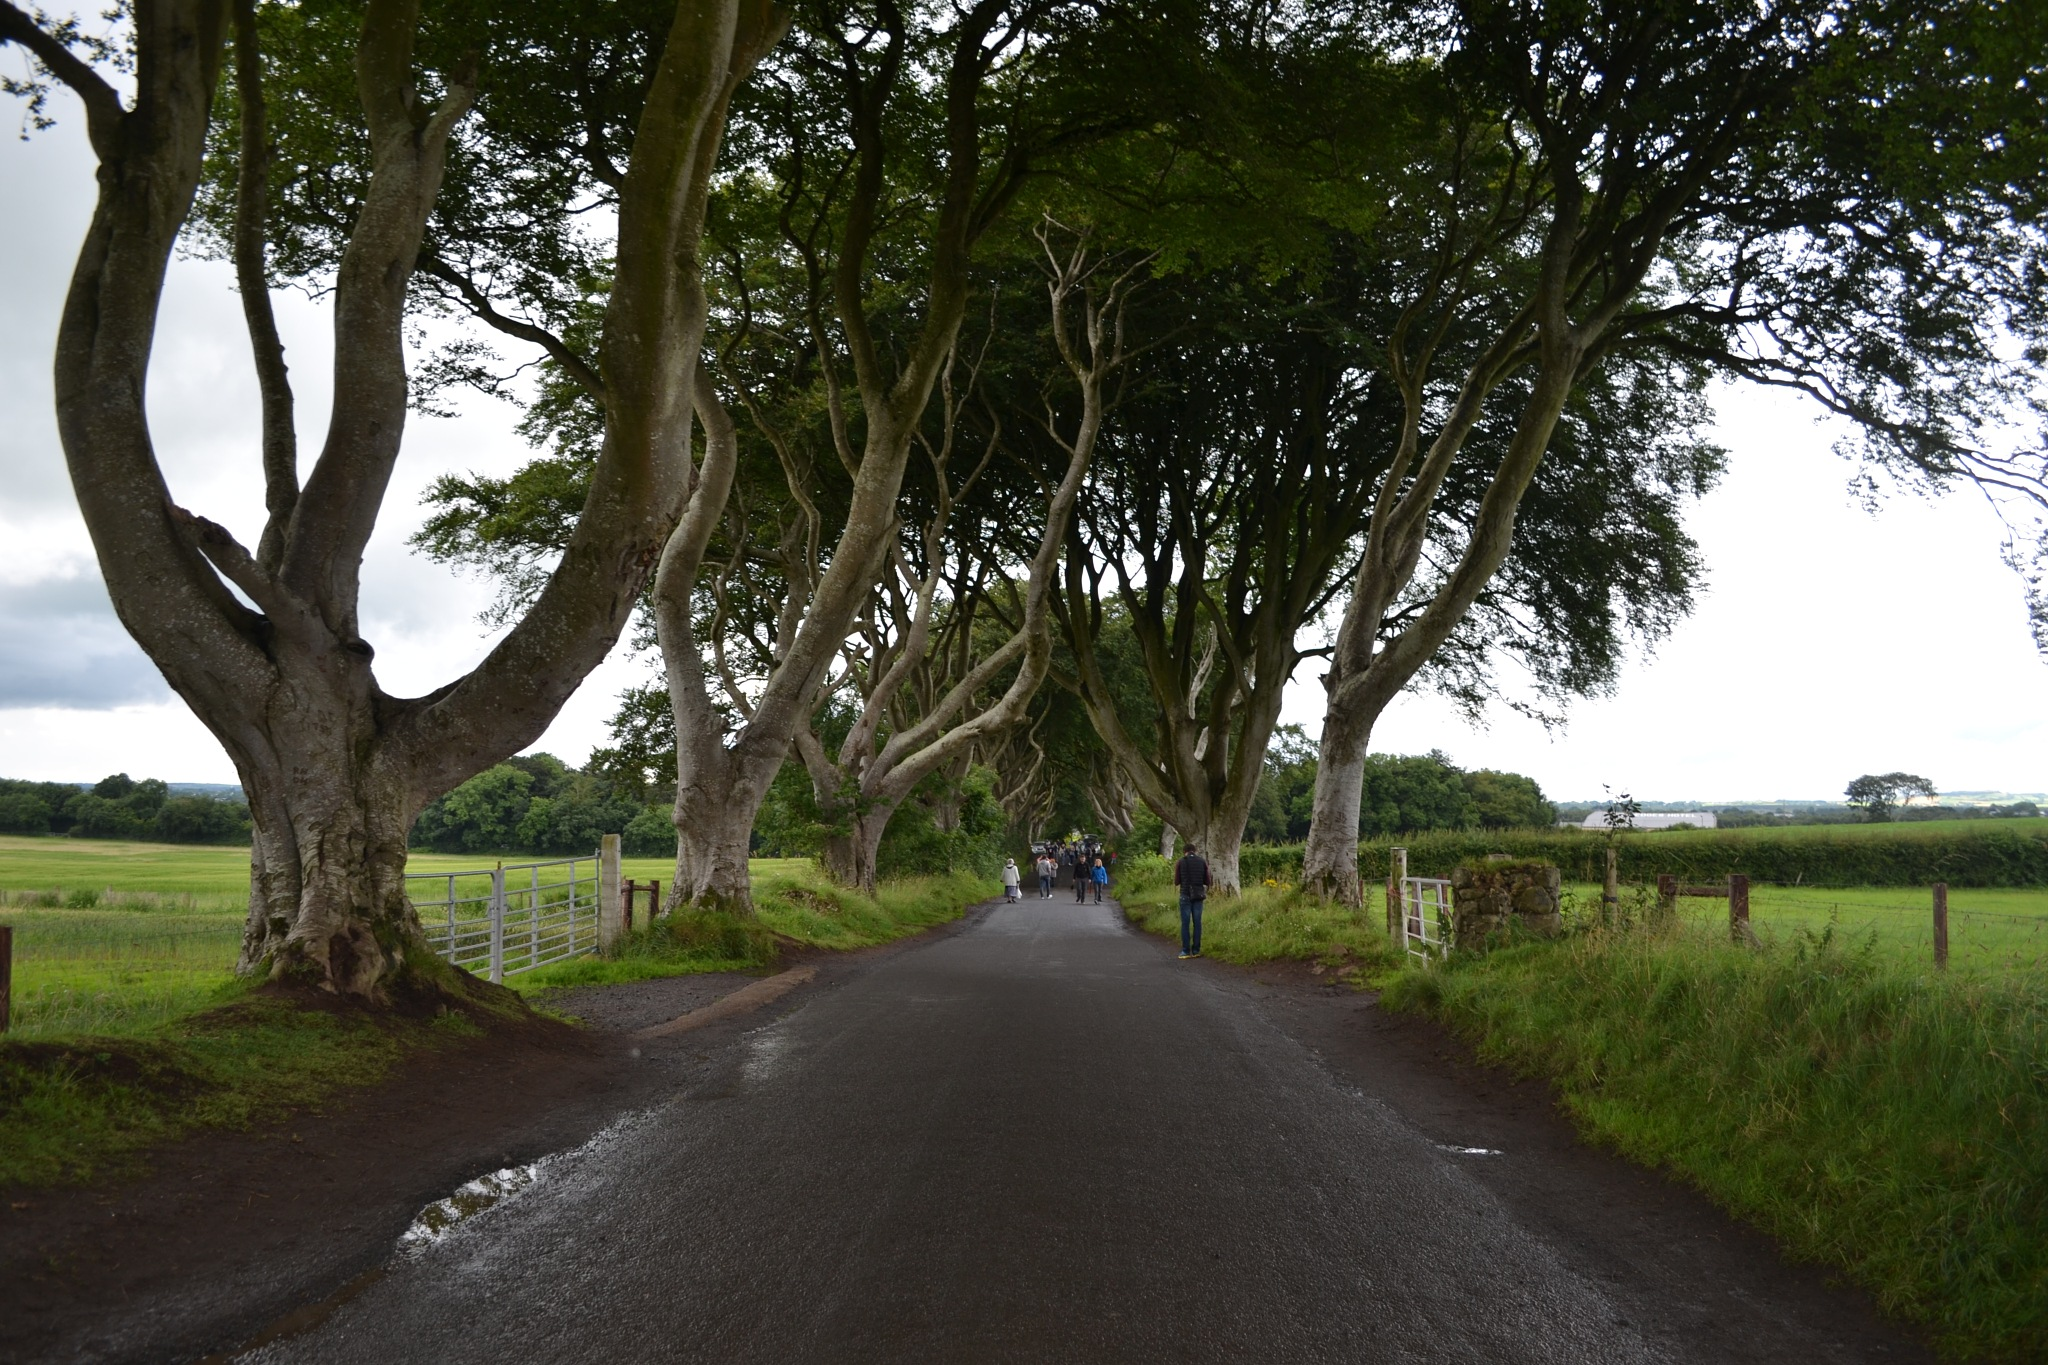 The Dark Hedges by Guendalino Marchesi